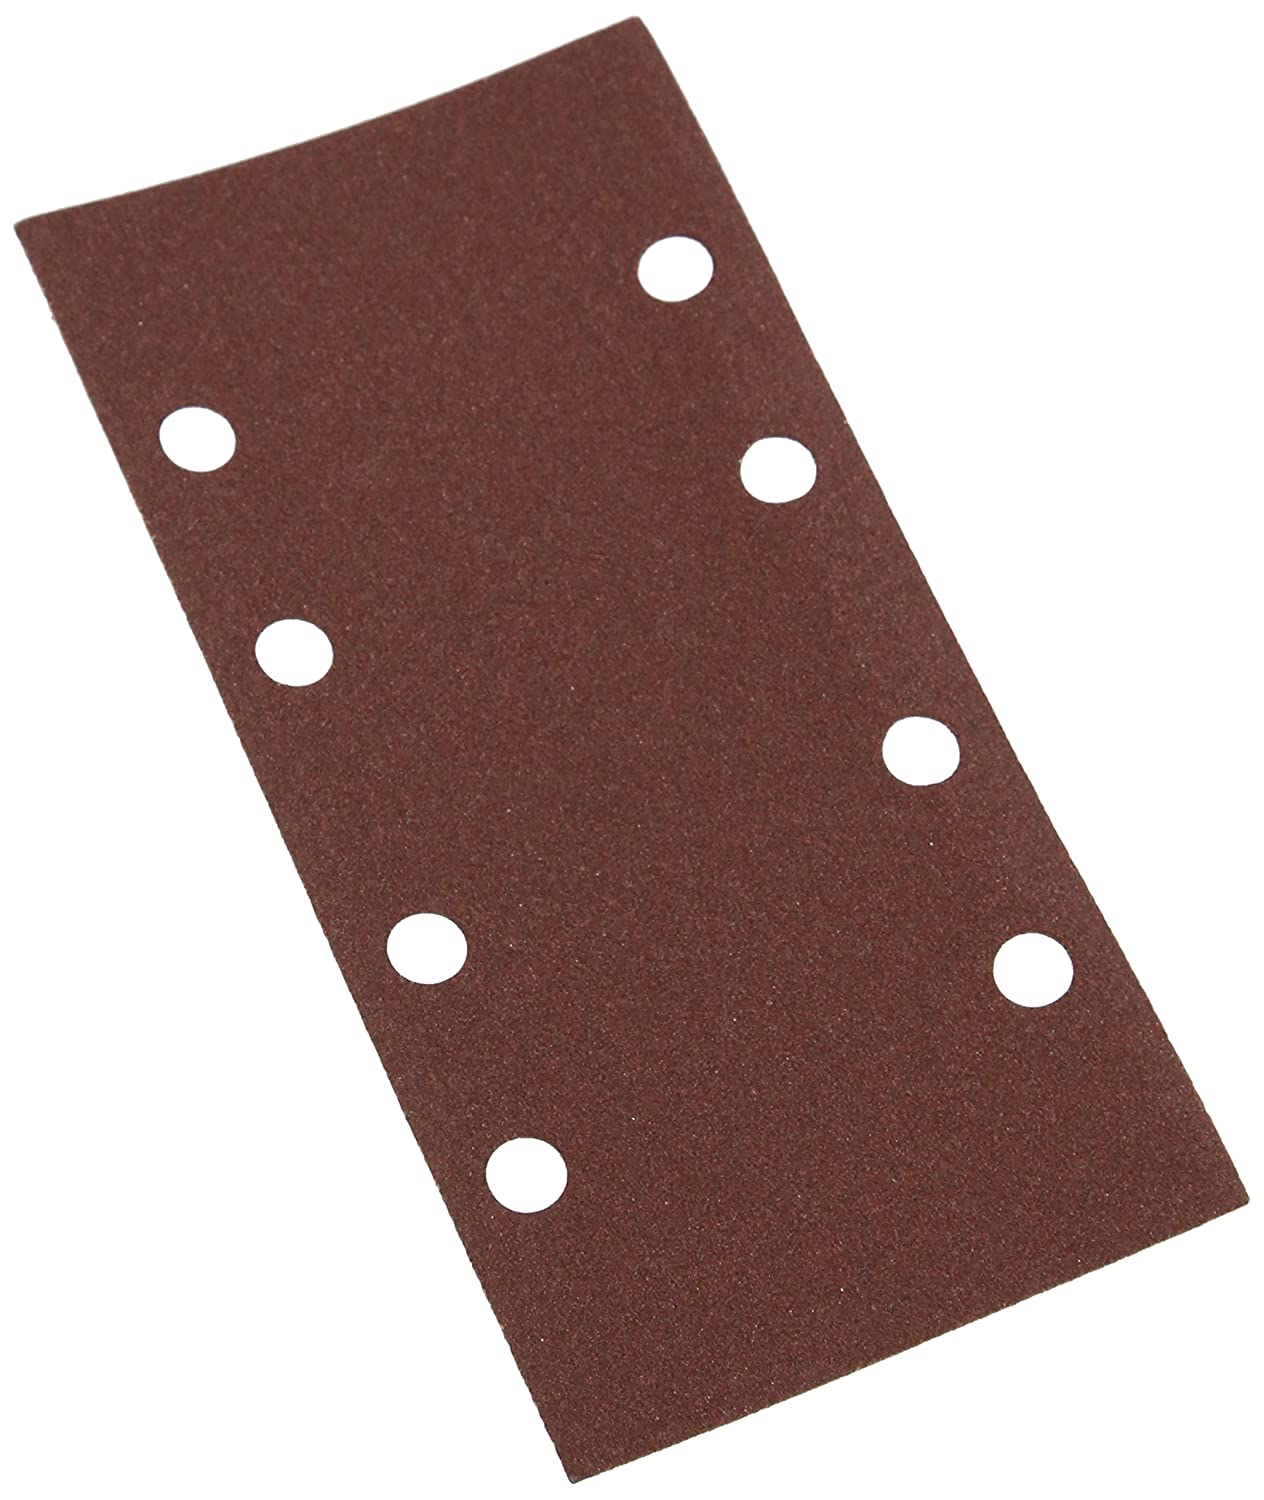 120 Grit Silverline 868737 Hook and Loop 1//3 Sheets Punched Pack of 10